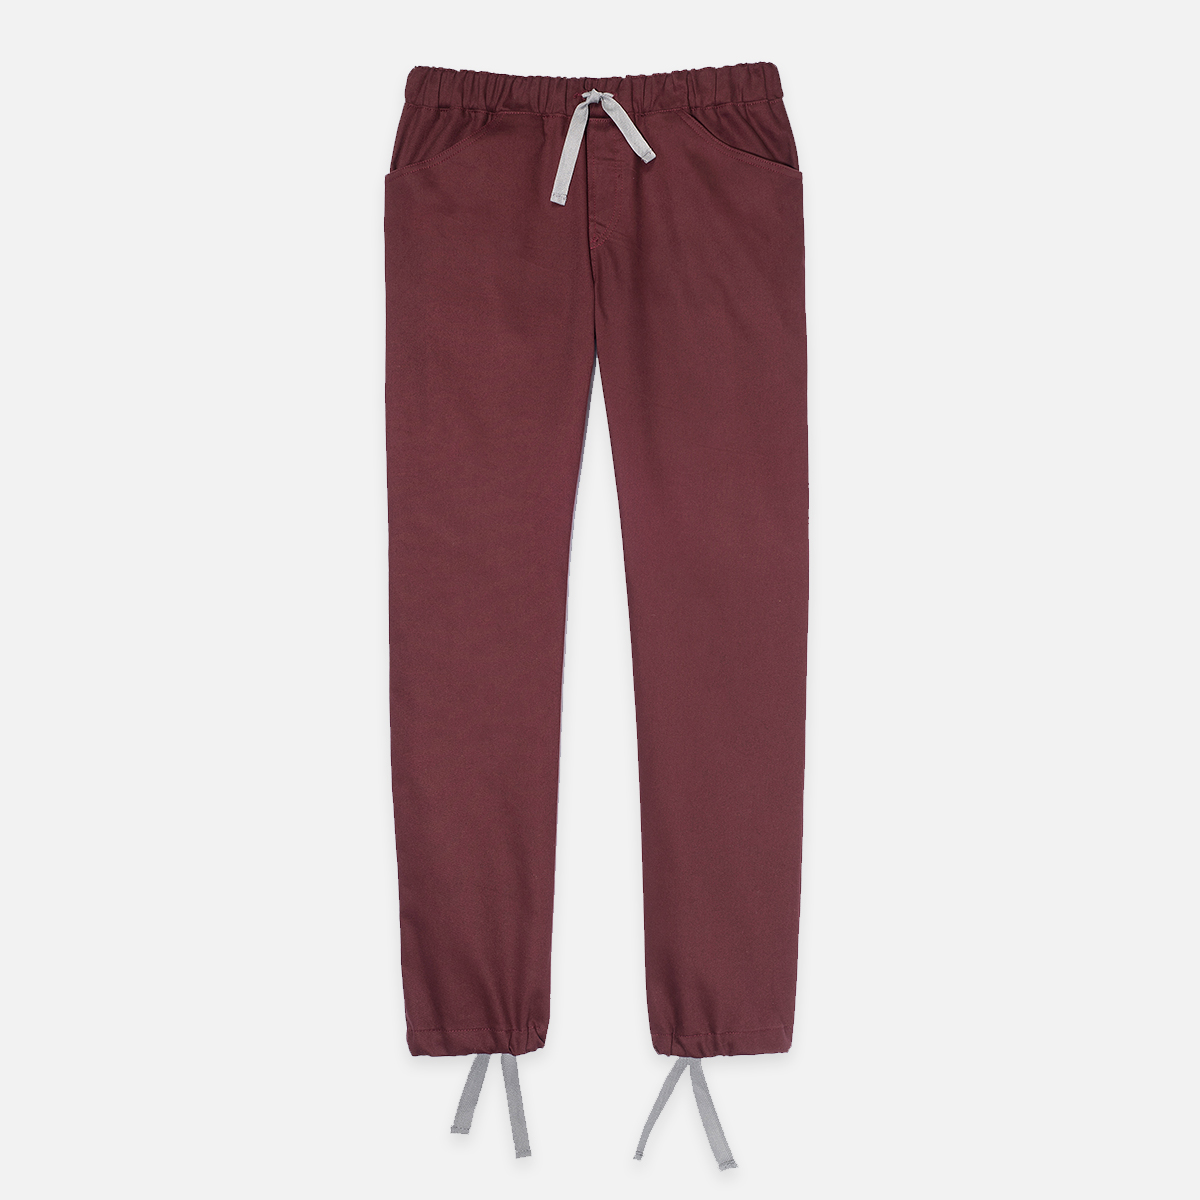 Deck Crew Chinos - Brown